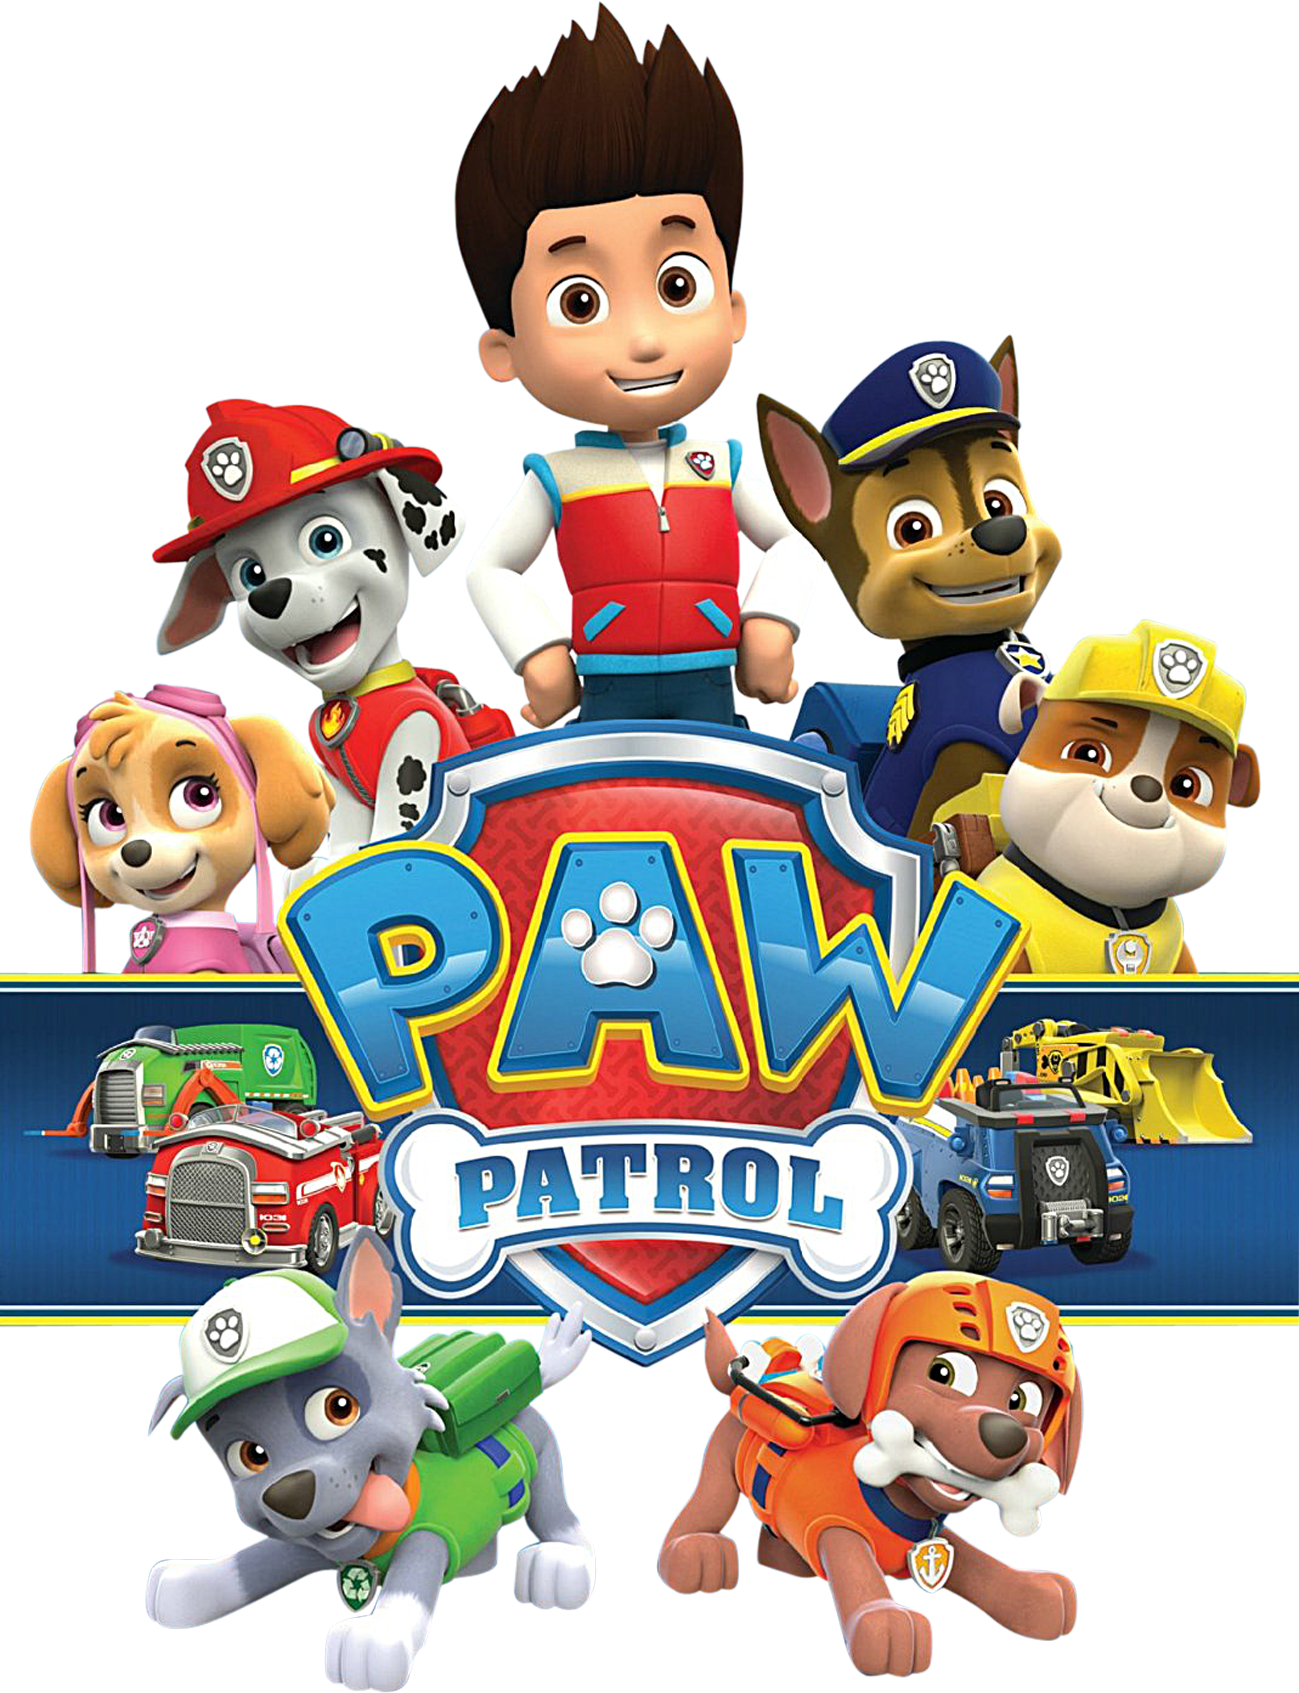 Paw patrol imagenes clipart svg library library Paw Patrol PNG HD Transparent Paw Patrol HD.PNG Images ... svg library library